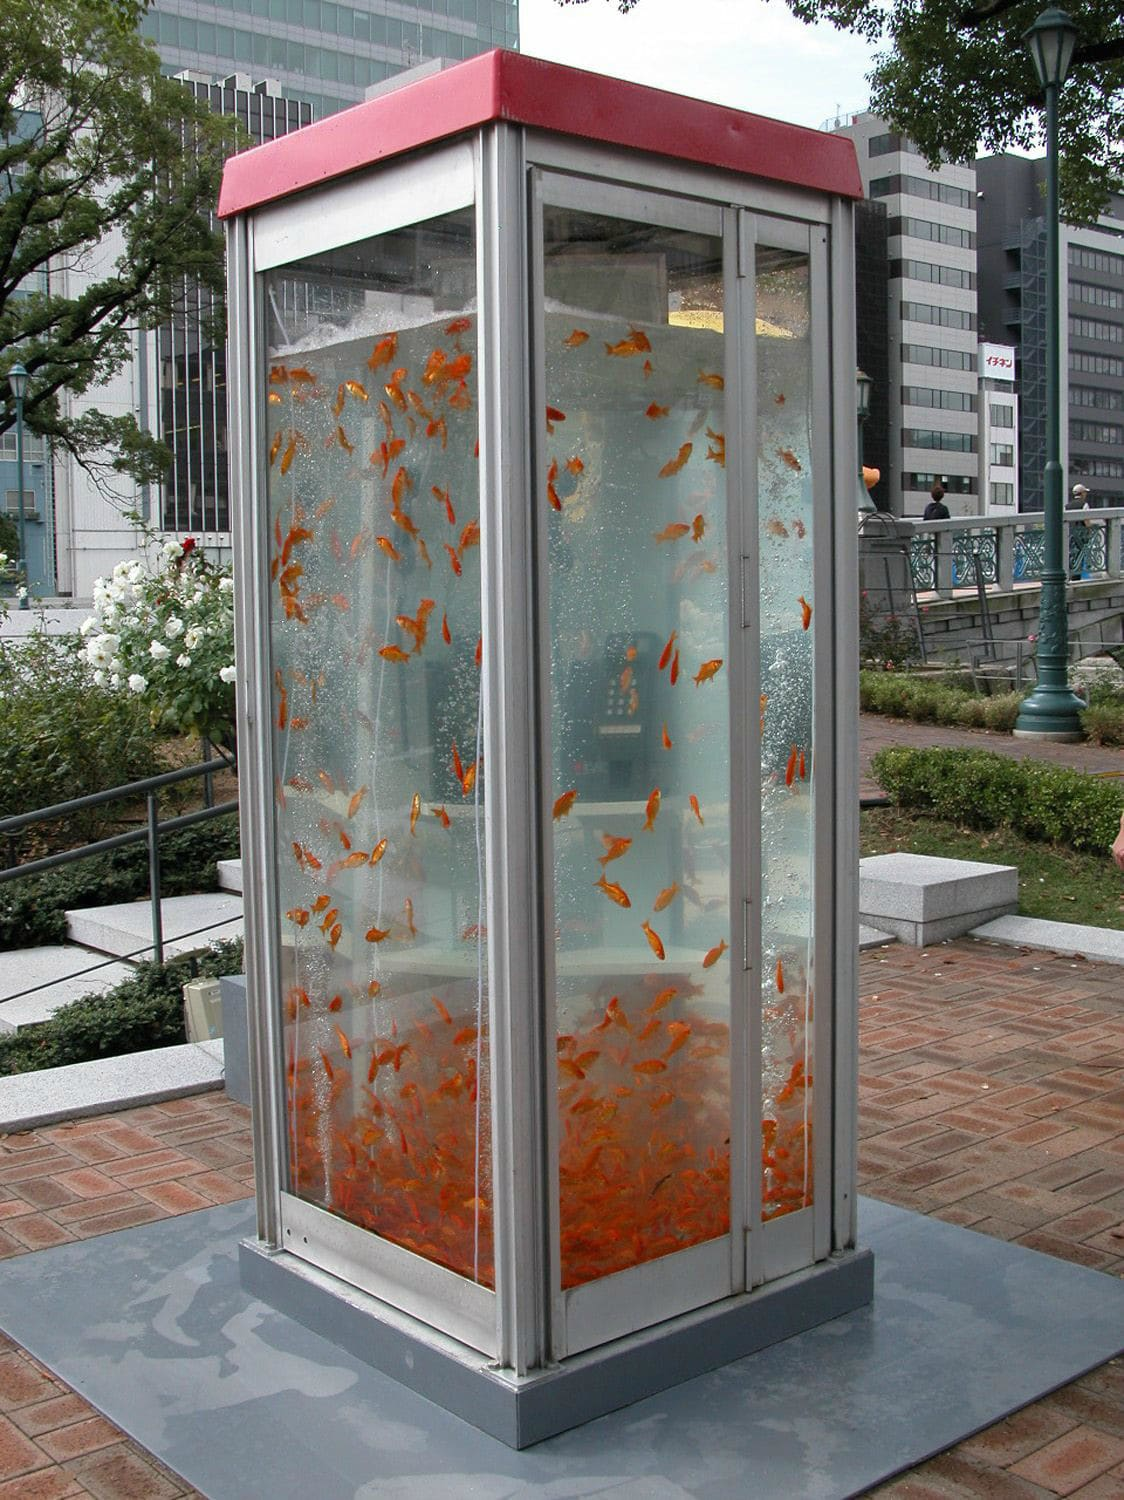 Retro Phone Booths Transformed Into Massive Goldfish Aquariums